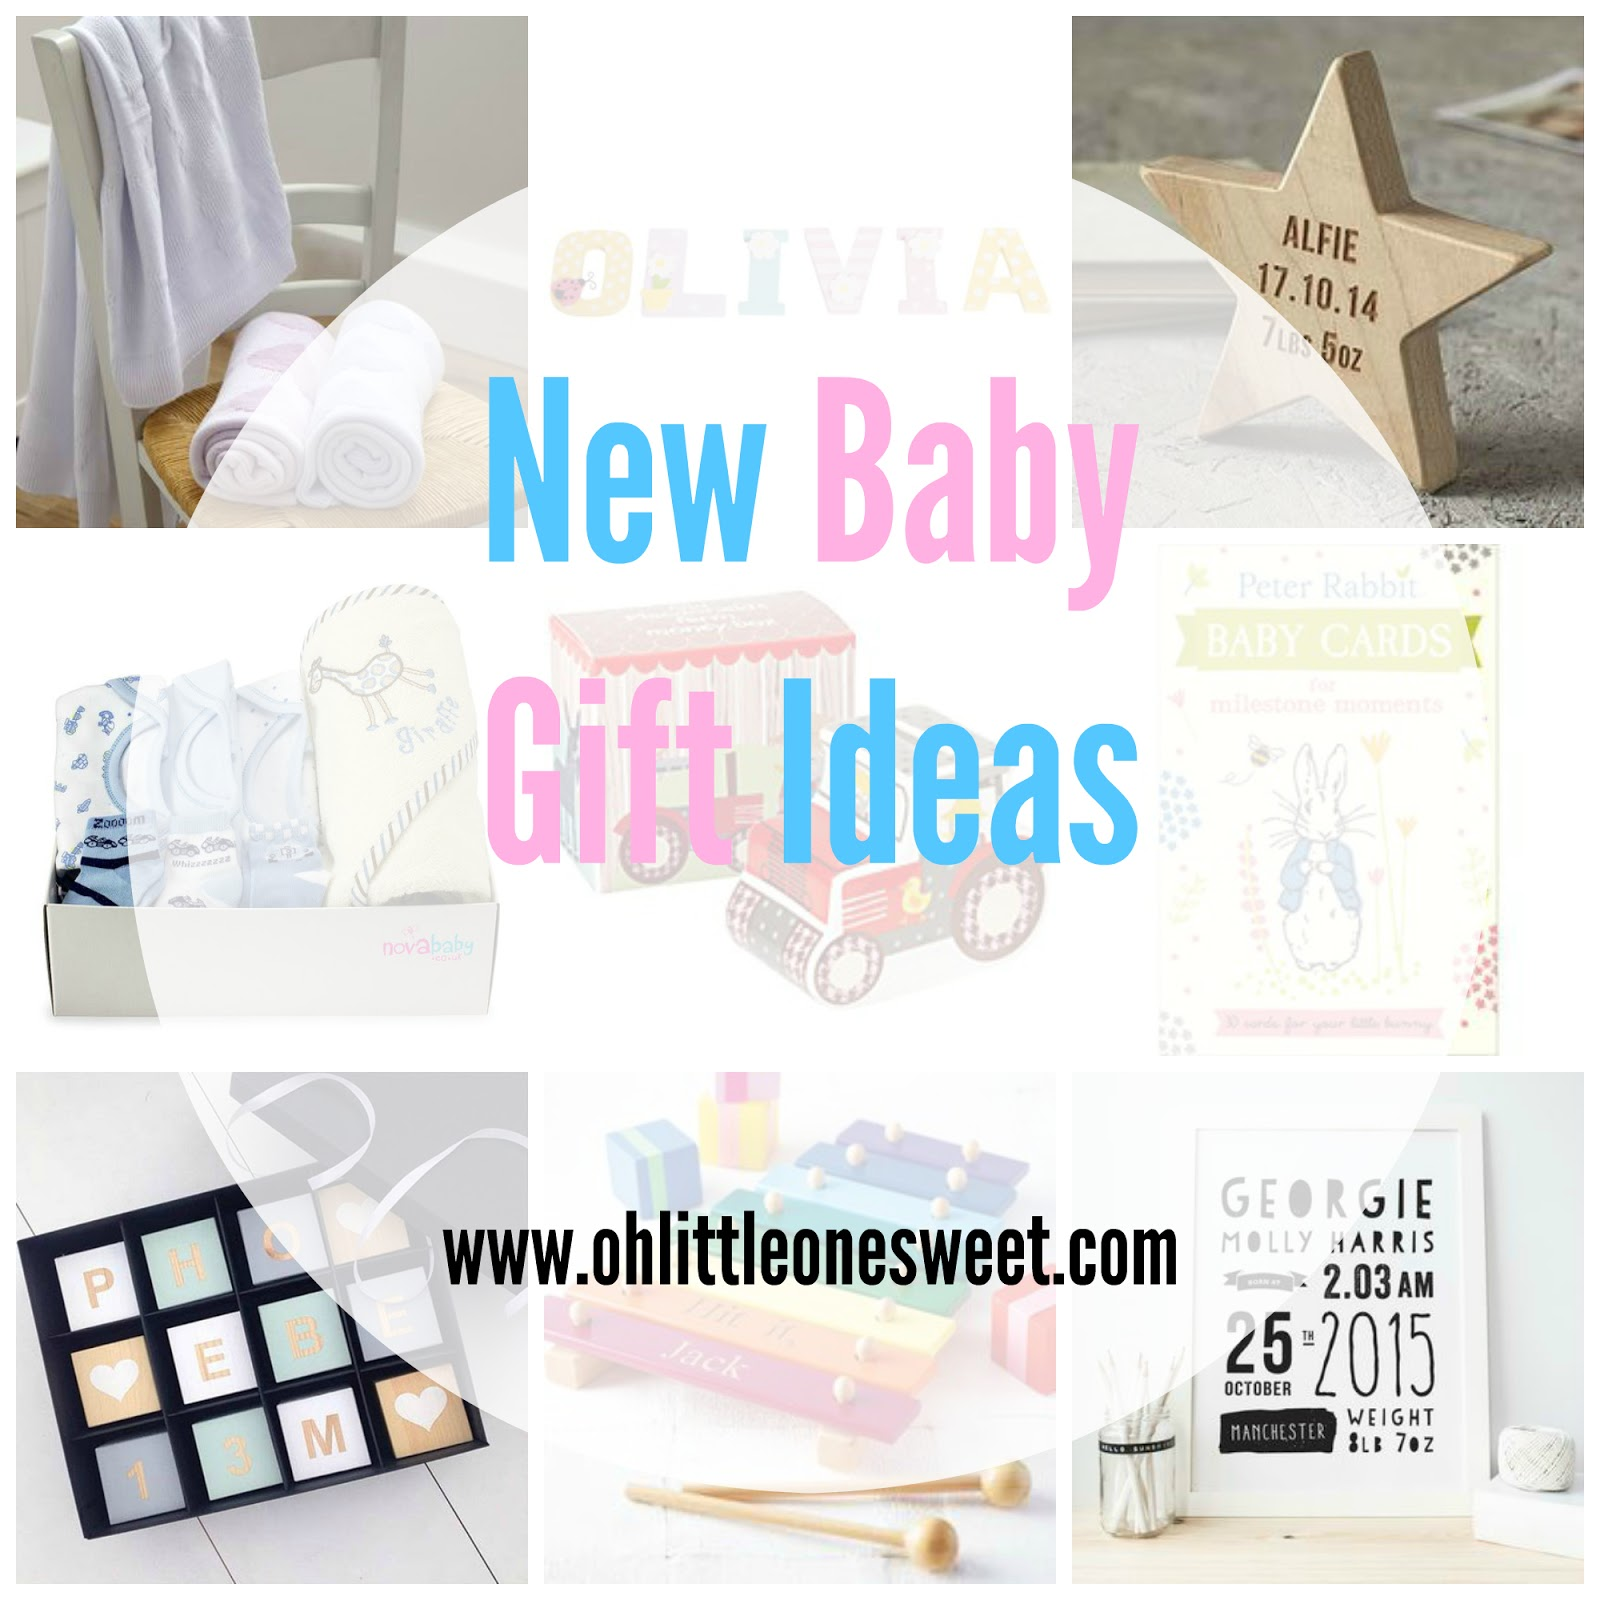 New Baby Gift Ideas | Oh Little One Sweet